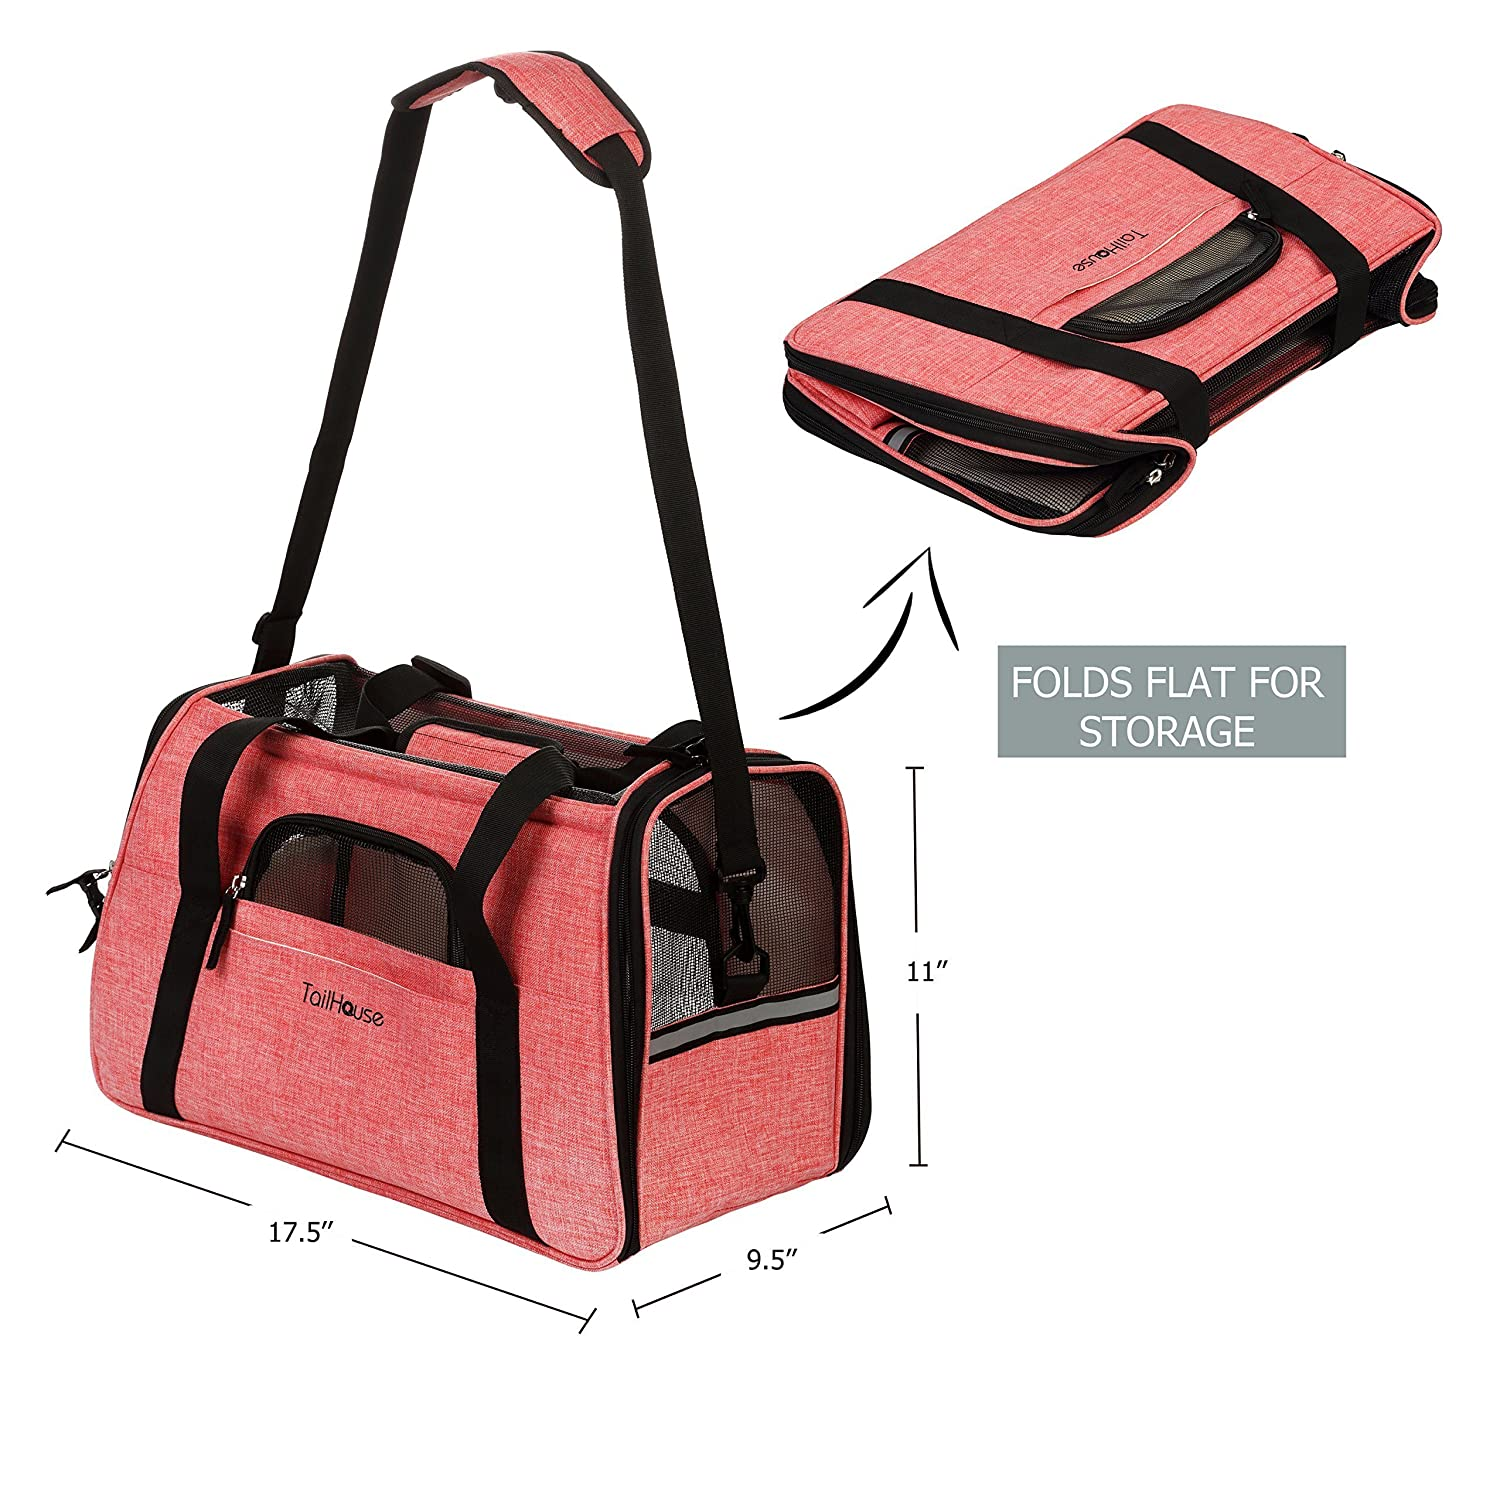 71a37be9e7 TailHouse Pet Carrier Airline Approved Dogs Cats Puppies  Pink Purse Travel  Bag fits Under seat- Premium Soft Sided Tote w Fleece Bed Shoulder Strap   ...